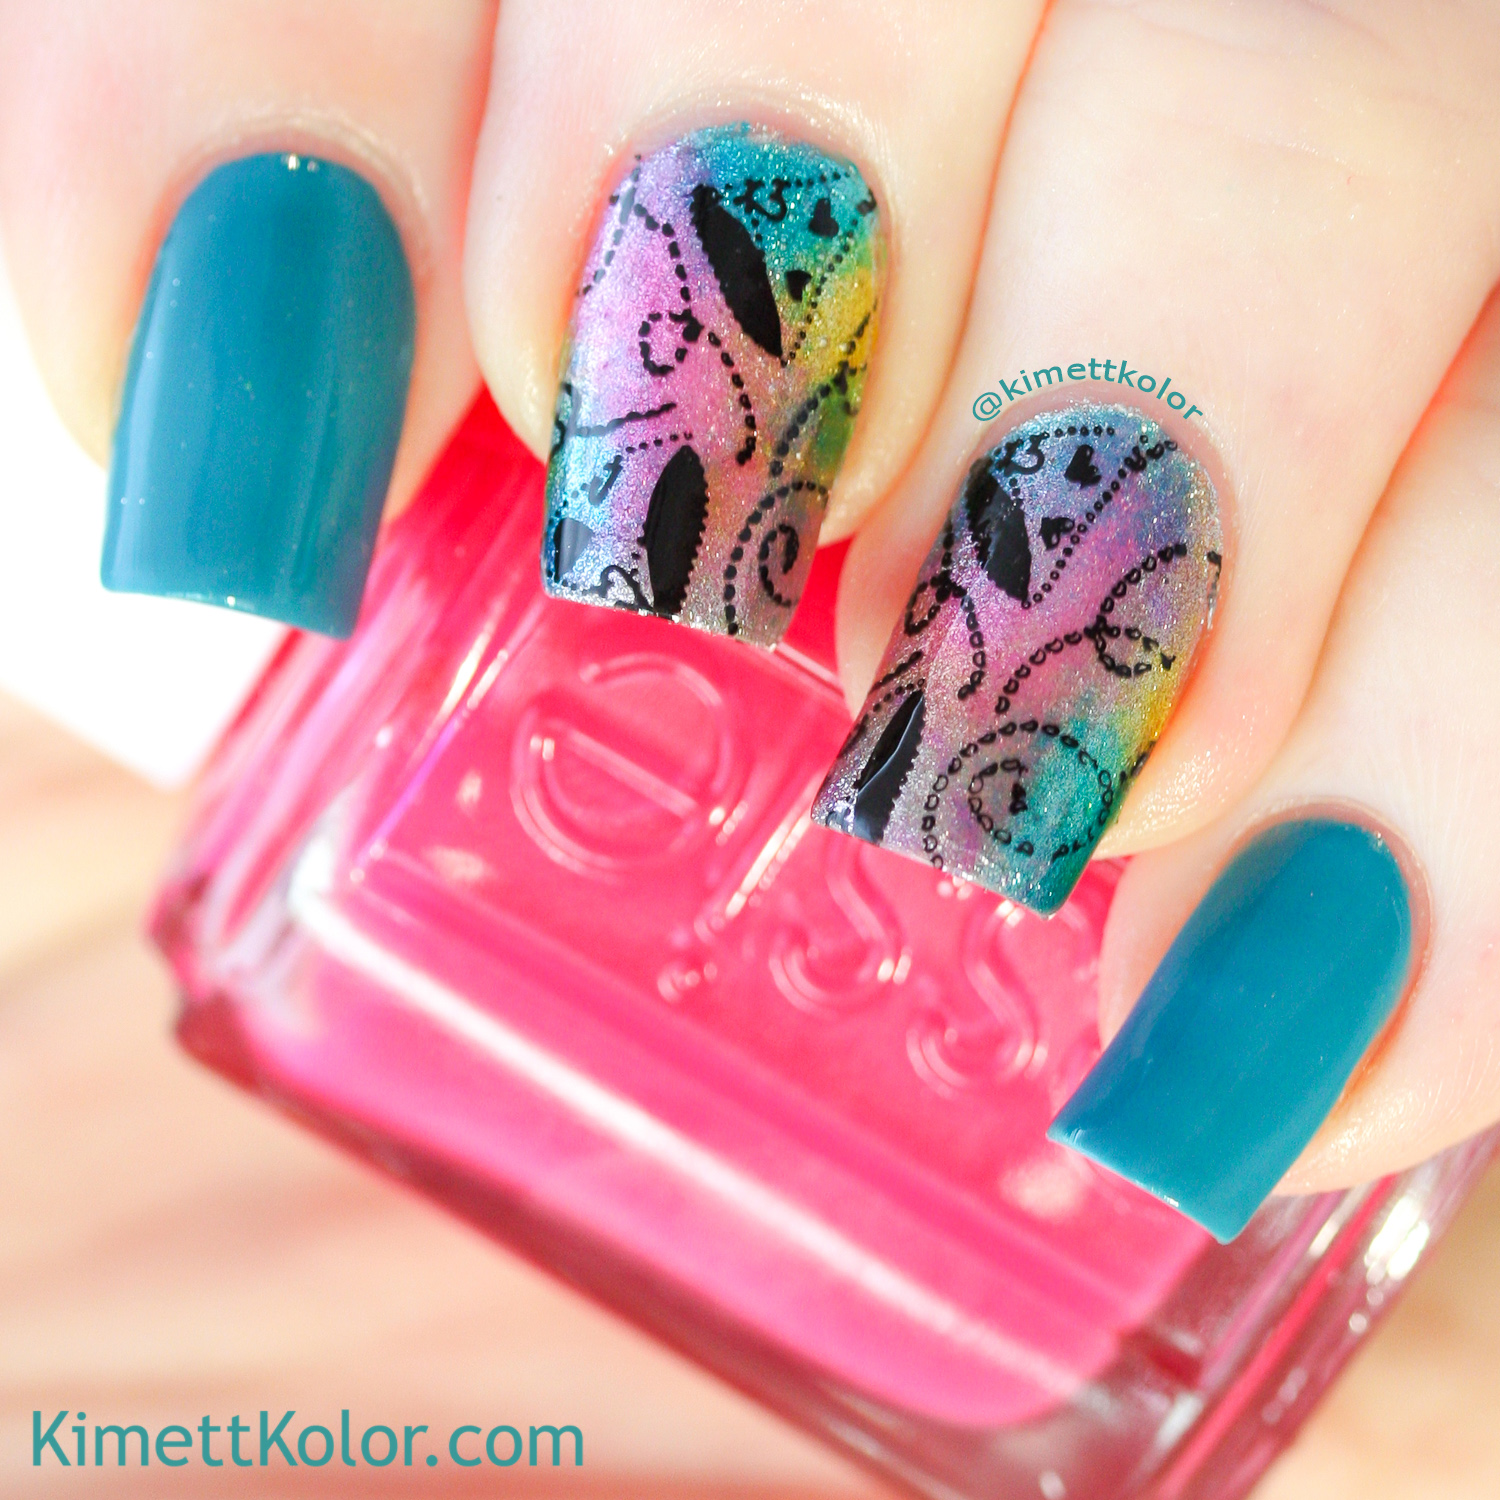 KimettKolor Birthday Nail Art Stamping